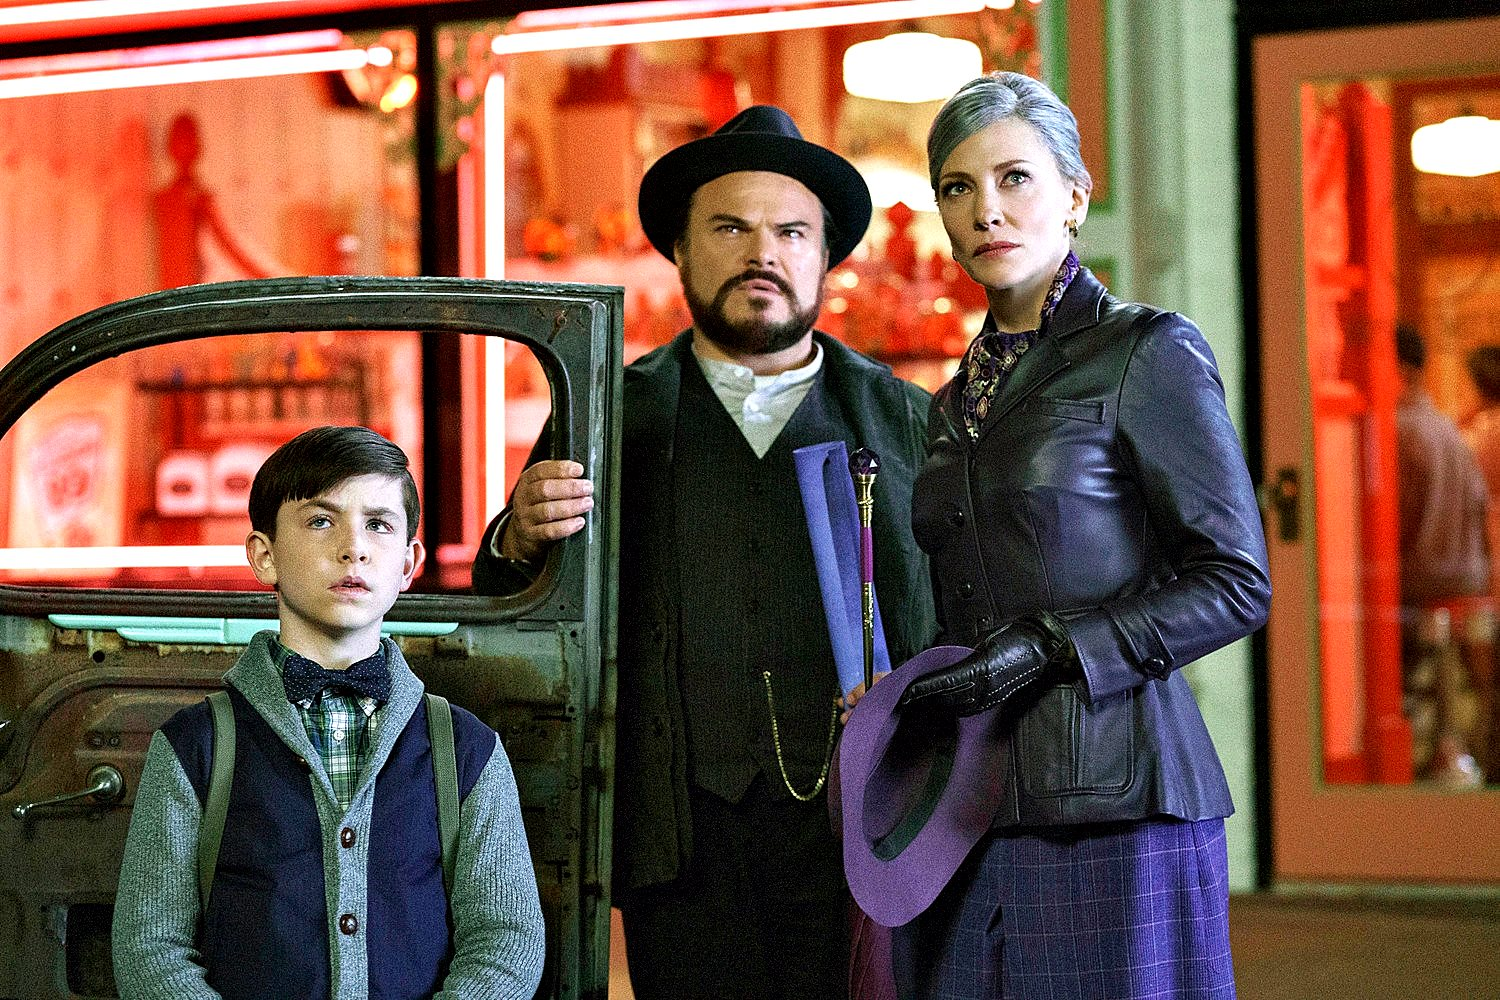 (l to r) Lewis Barnavelt (Owen Vaccaro), Uncle Jonathan (Jack Black) and Florence Zimmerman (Cate Blanchett) in The House With a Clock in Its Walls (2018)